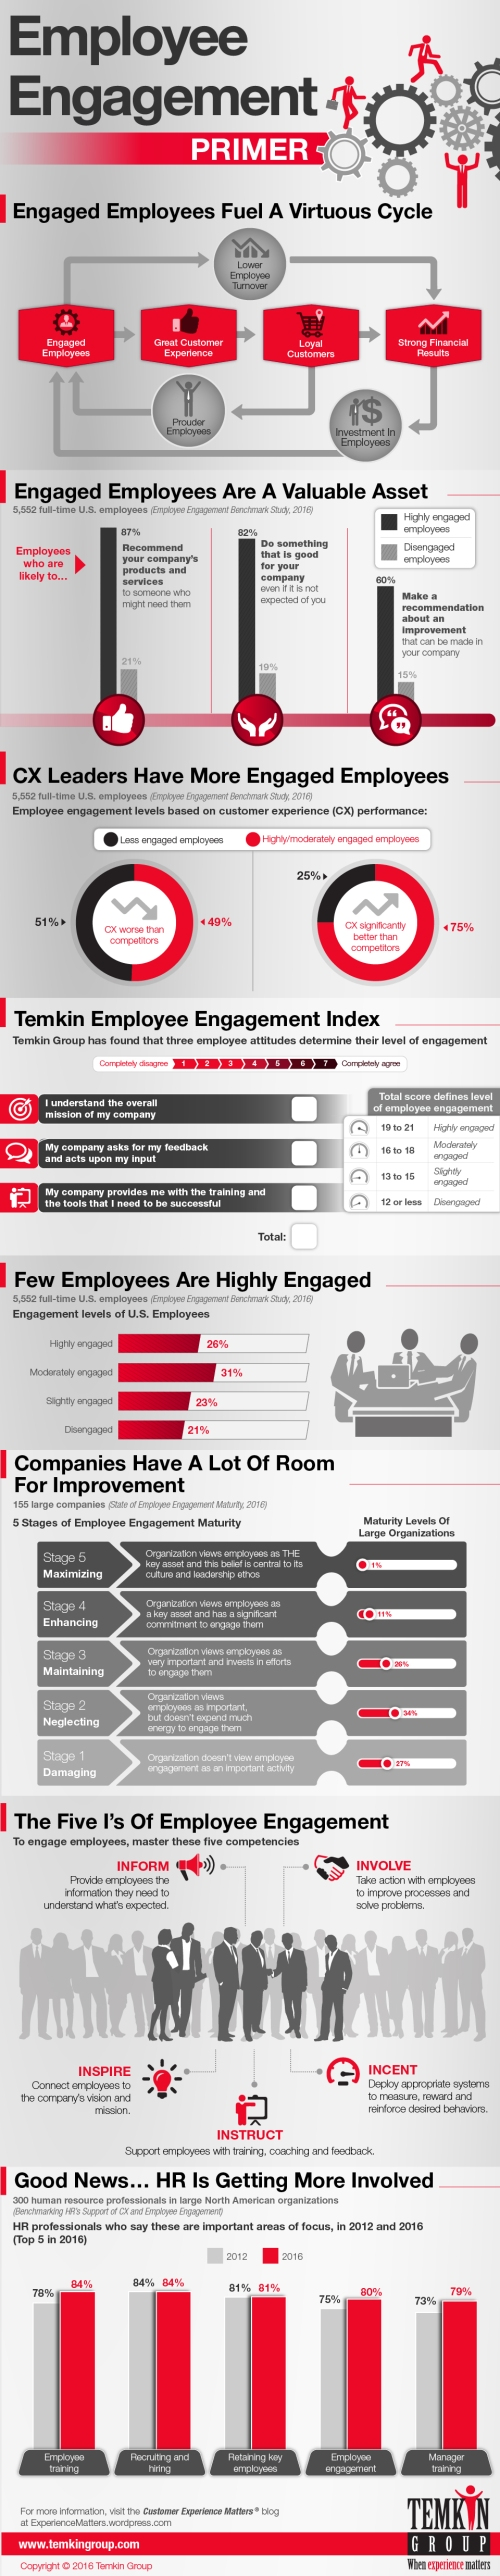 1609_Employee Engagement Infographic